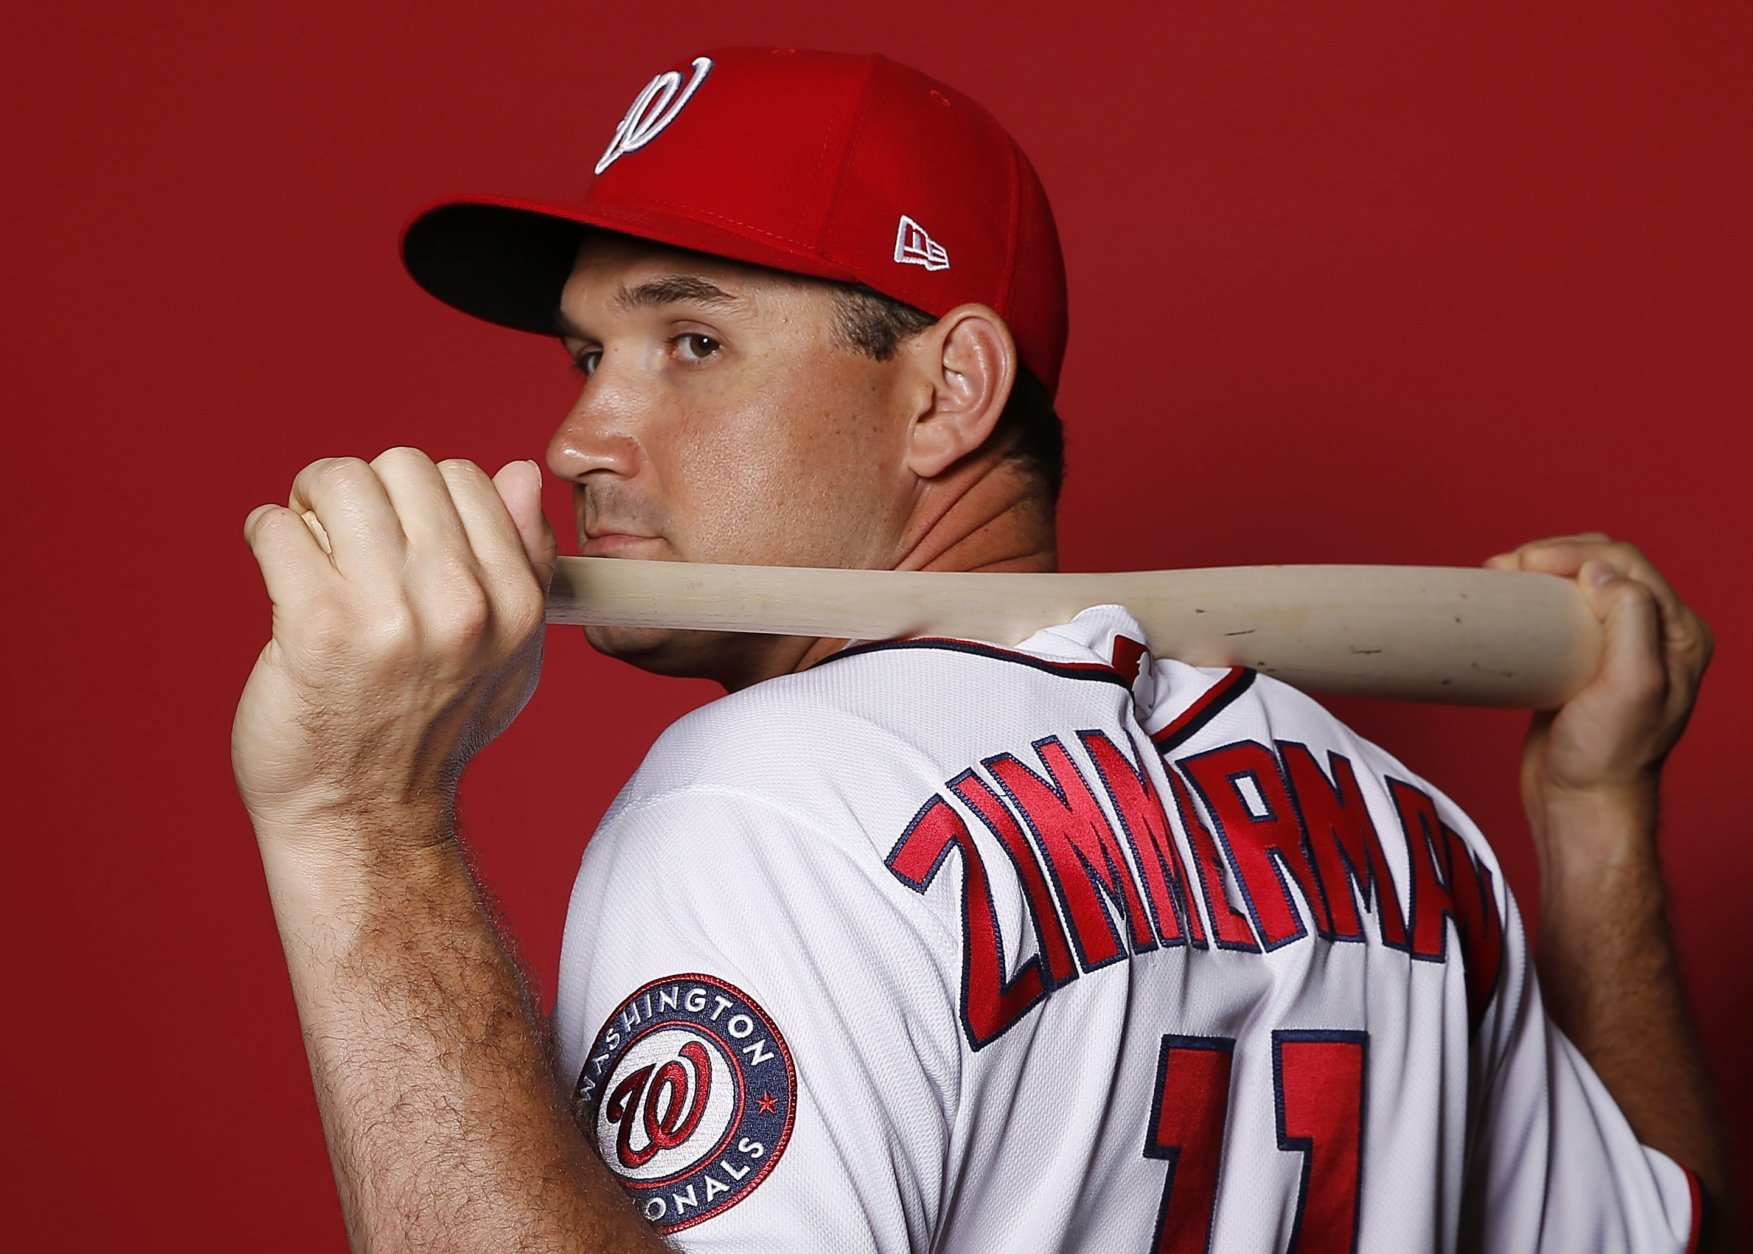 WEST PALM BEACH, FLORIDA - FEBRUARY 22:  Ryan Zimmerman #11 of the Washington Nationals poses for a portrait on Photo Day at FITTEAM Ballpark of The Palm Beaches during on February 22, 2019 in West Palm Beach, Florida. (Photo by Michael Reaves/Getty Images)